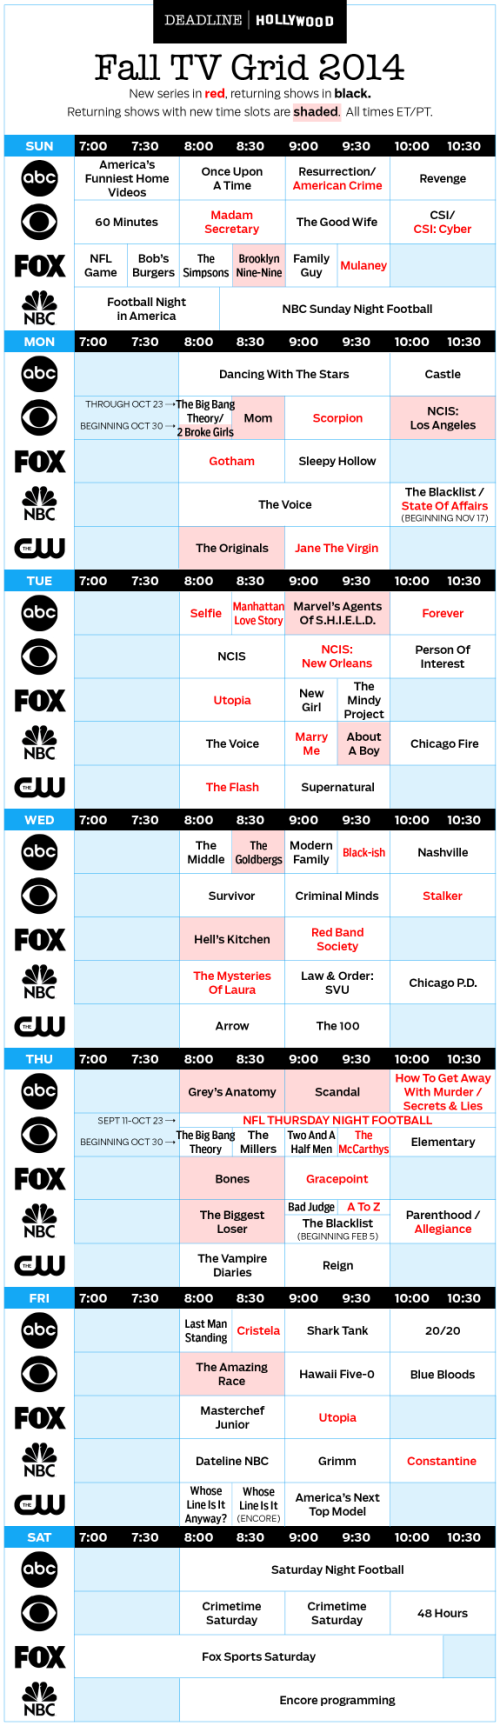 Fall 2014 TV Grid